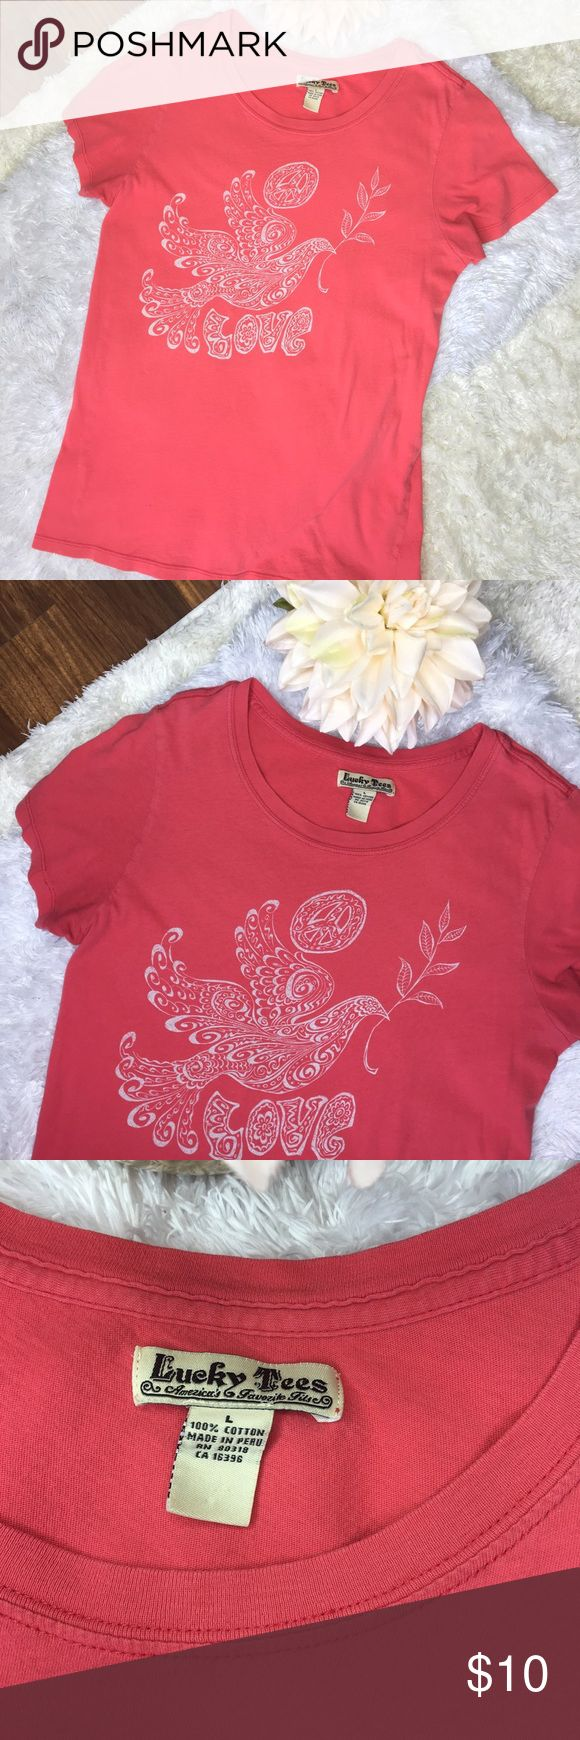 """Lucky Tees dark coral graphic short sleeve t shirt Lucky Tees coral graphic short sleeve tee shirt. Size Large. Cute dove, peace, flower graphic in white. Classic crew neck. Small discoloration spot on back seen in last photo. Approx measurements laying flat: 17.5"""" chest 25.5"""" length #lucky #tees #coral #graphic #peace #bird #love #flower #shortsleeve #top #shirt  ❌No trades❌ lucky tees Tops Tees - Short Sleeve"""